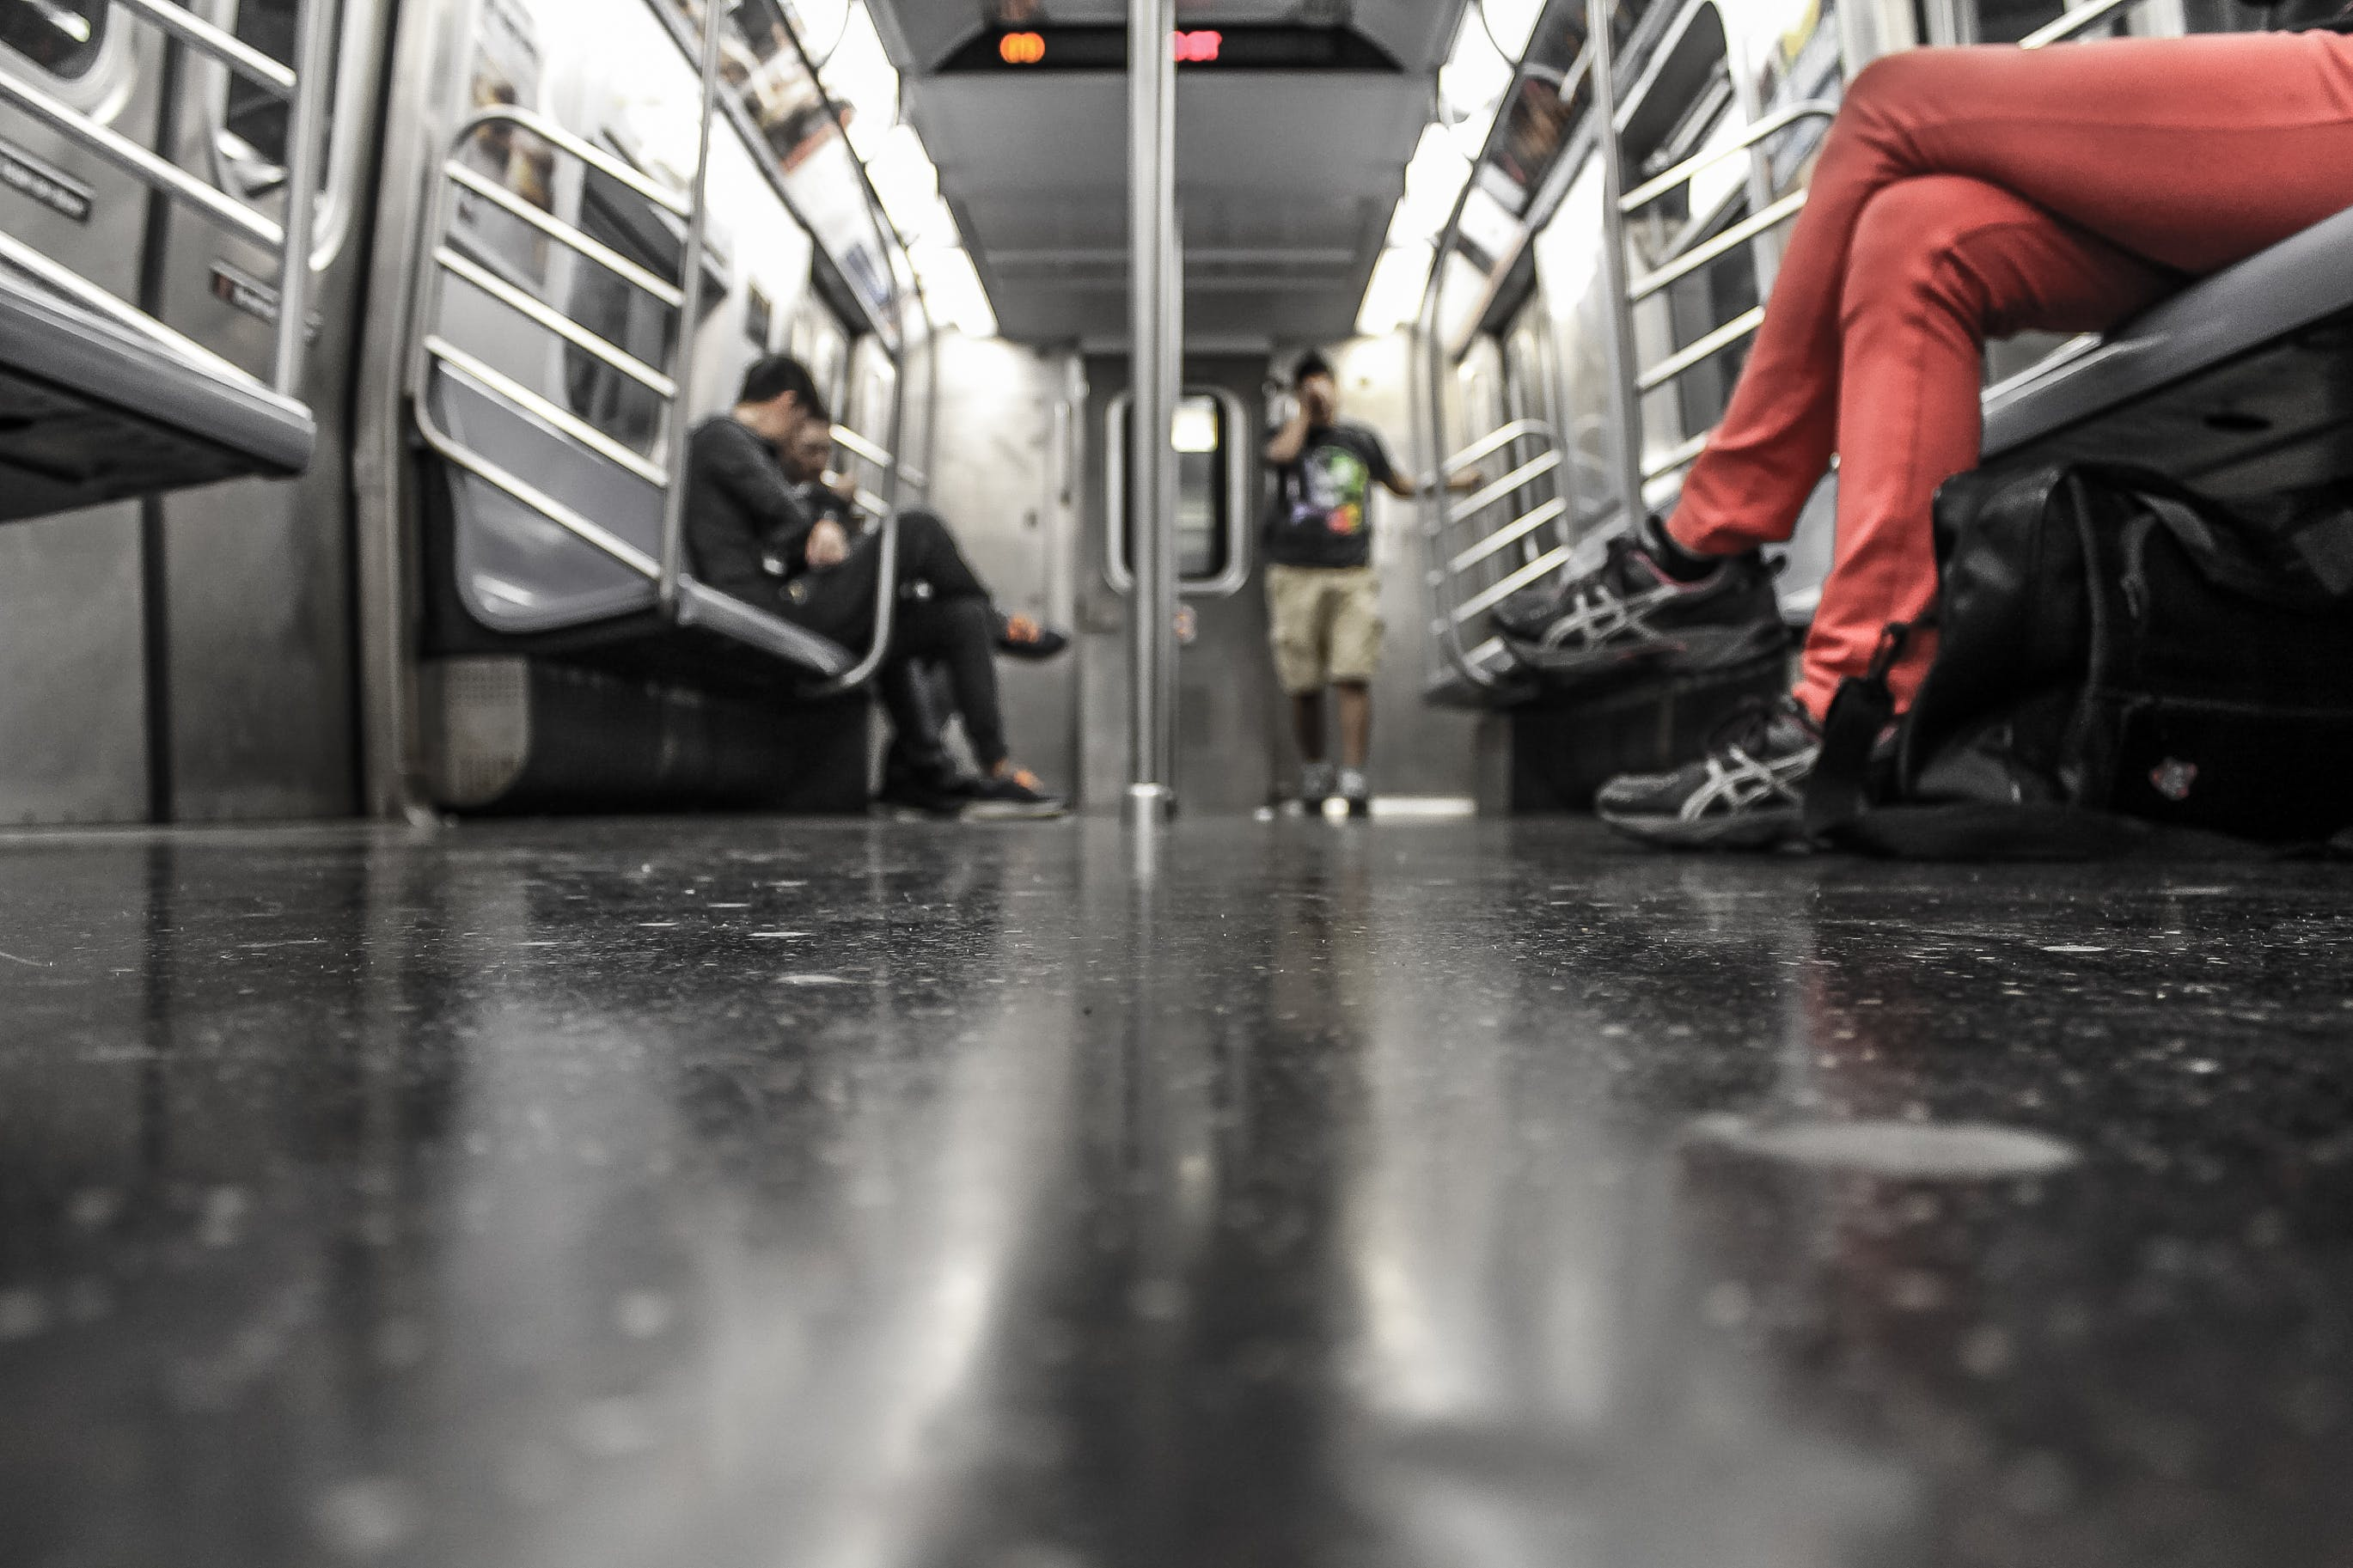 Free stock photo of people, train, public transportation, underground